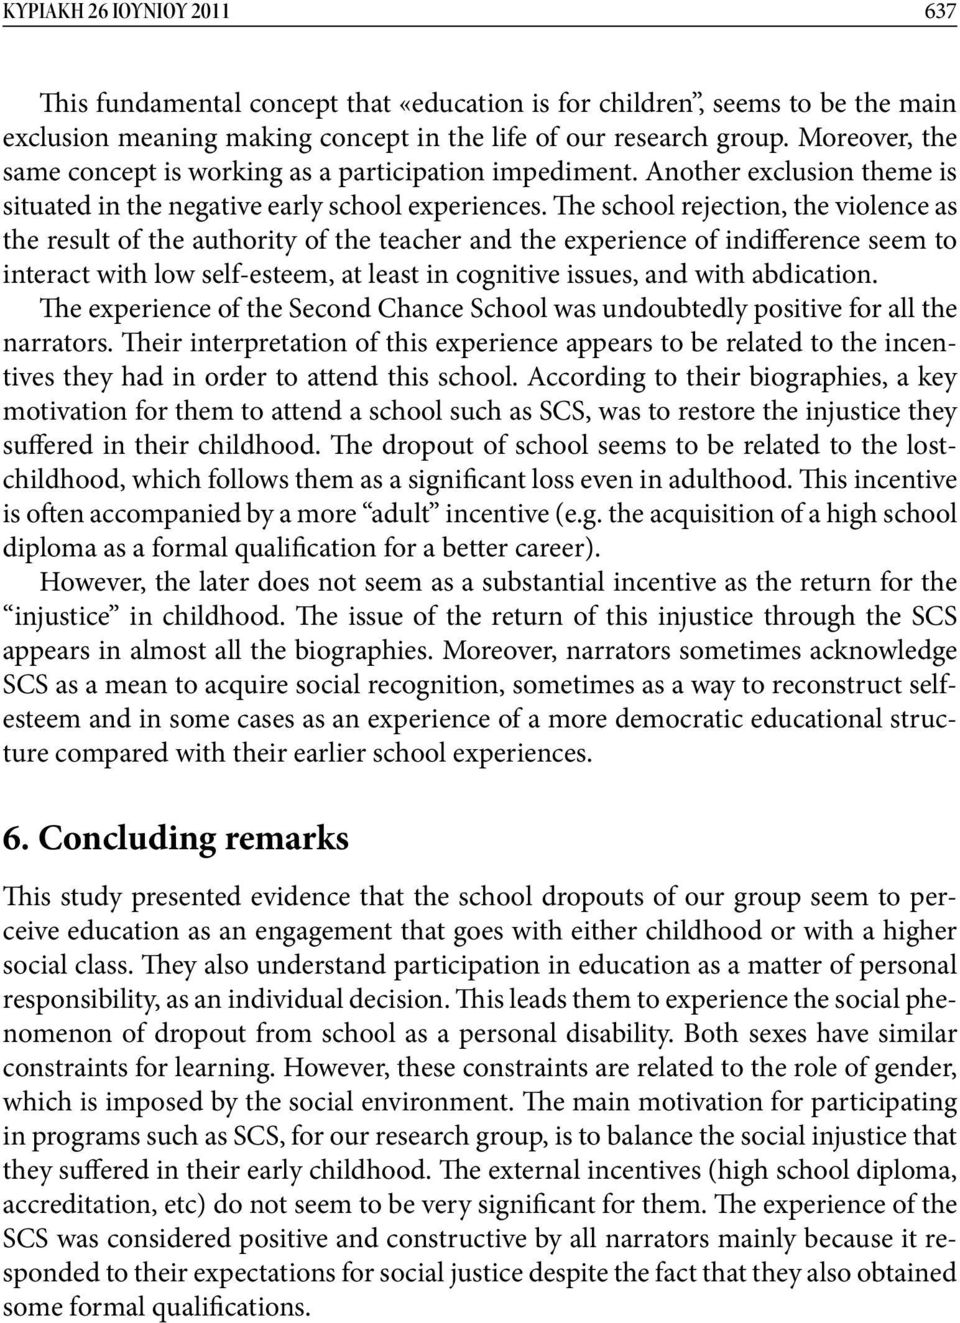 The school rejection, the violence as the result of the authority of the teacher and the experience of indifference seem to interact with low self-esteem, at least in cognitive issues, and with